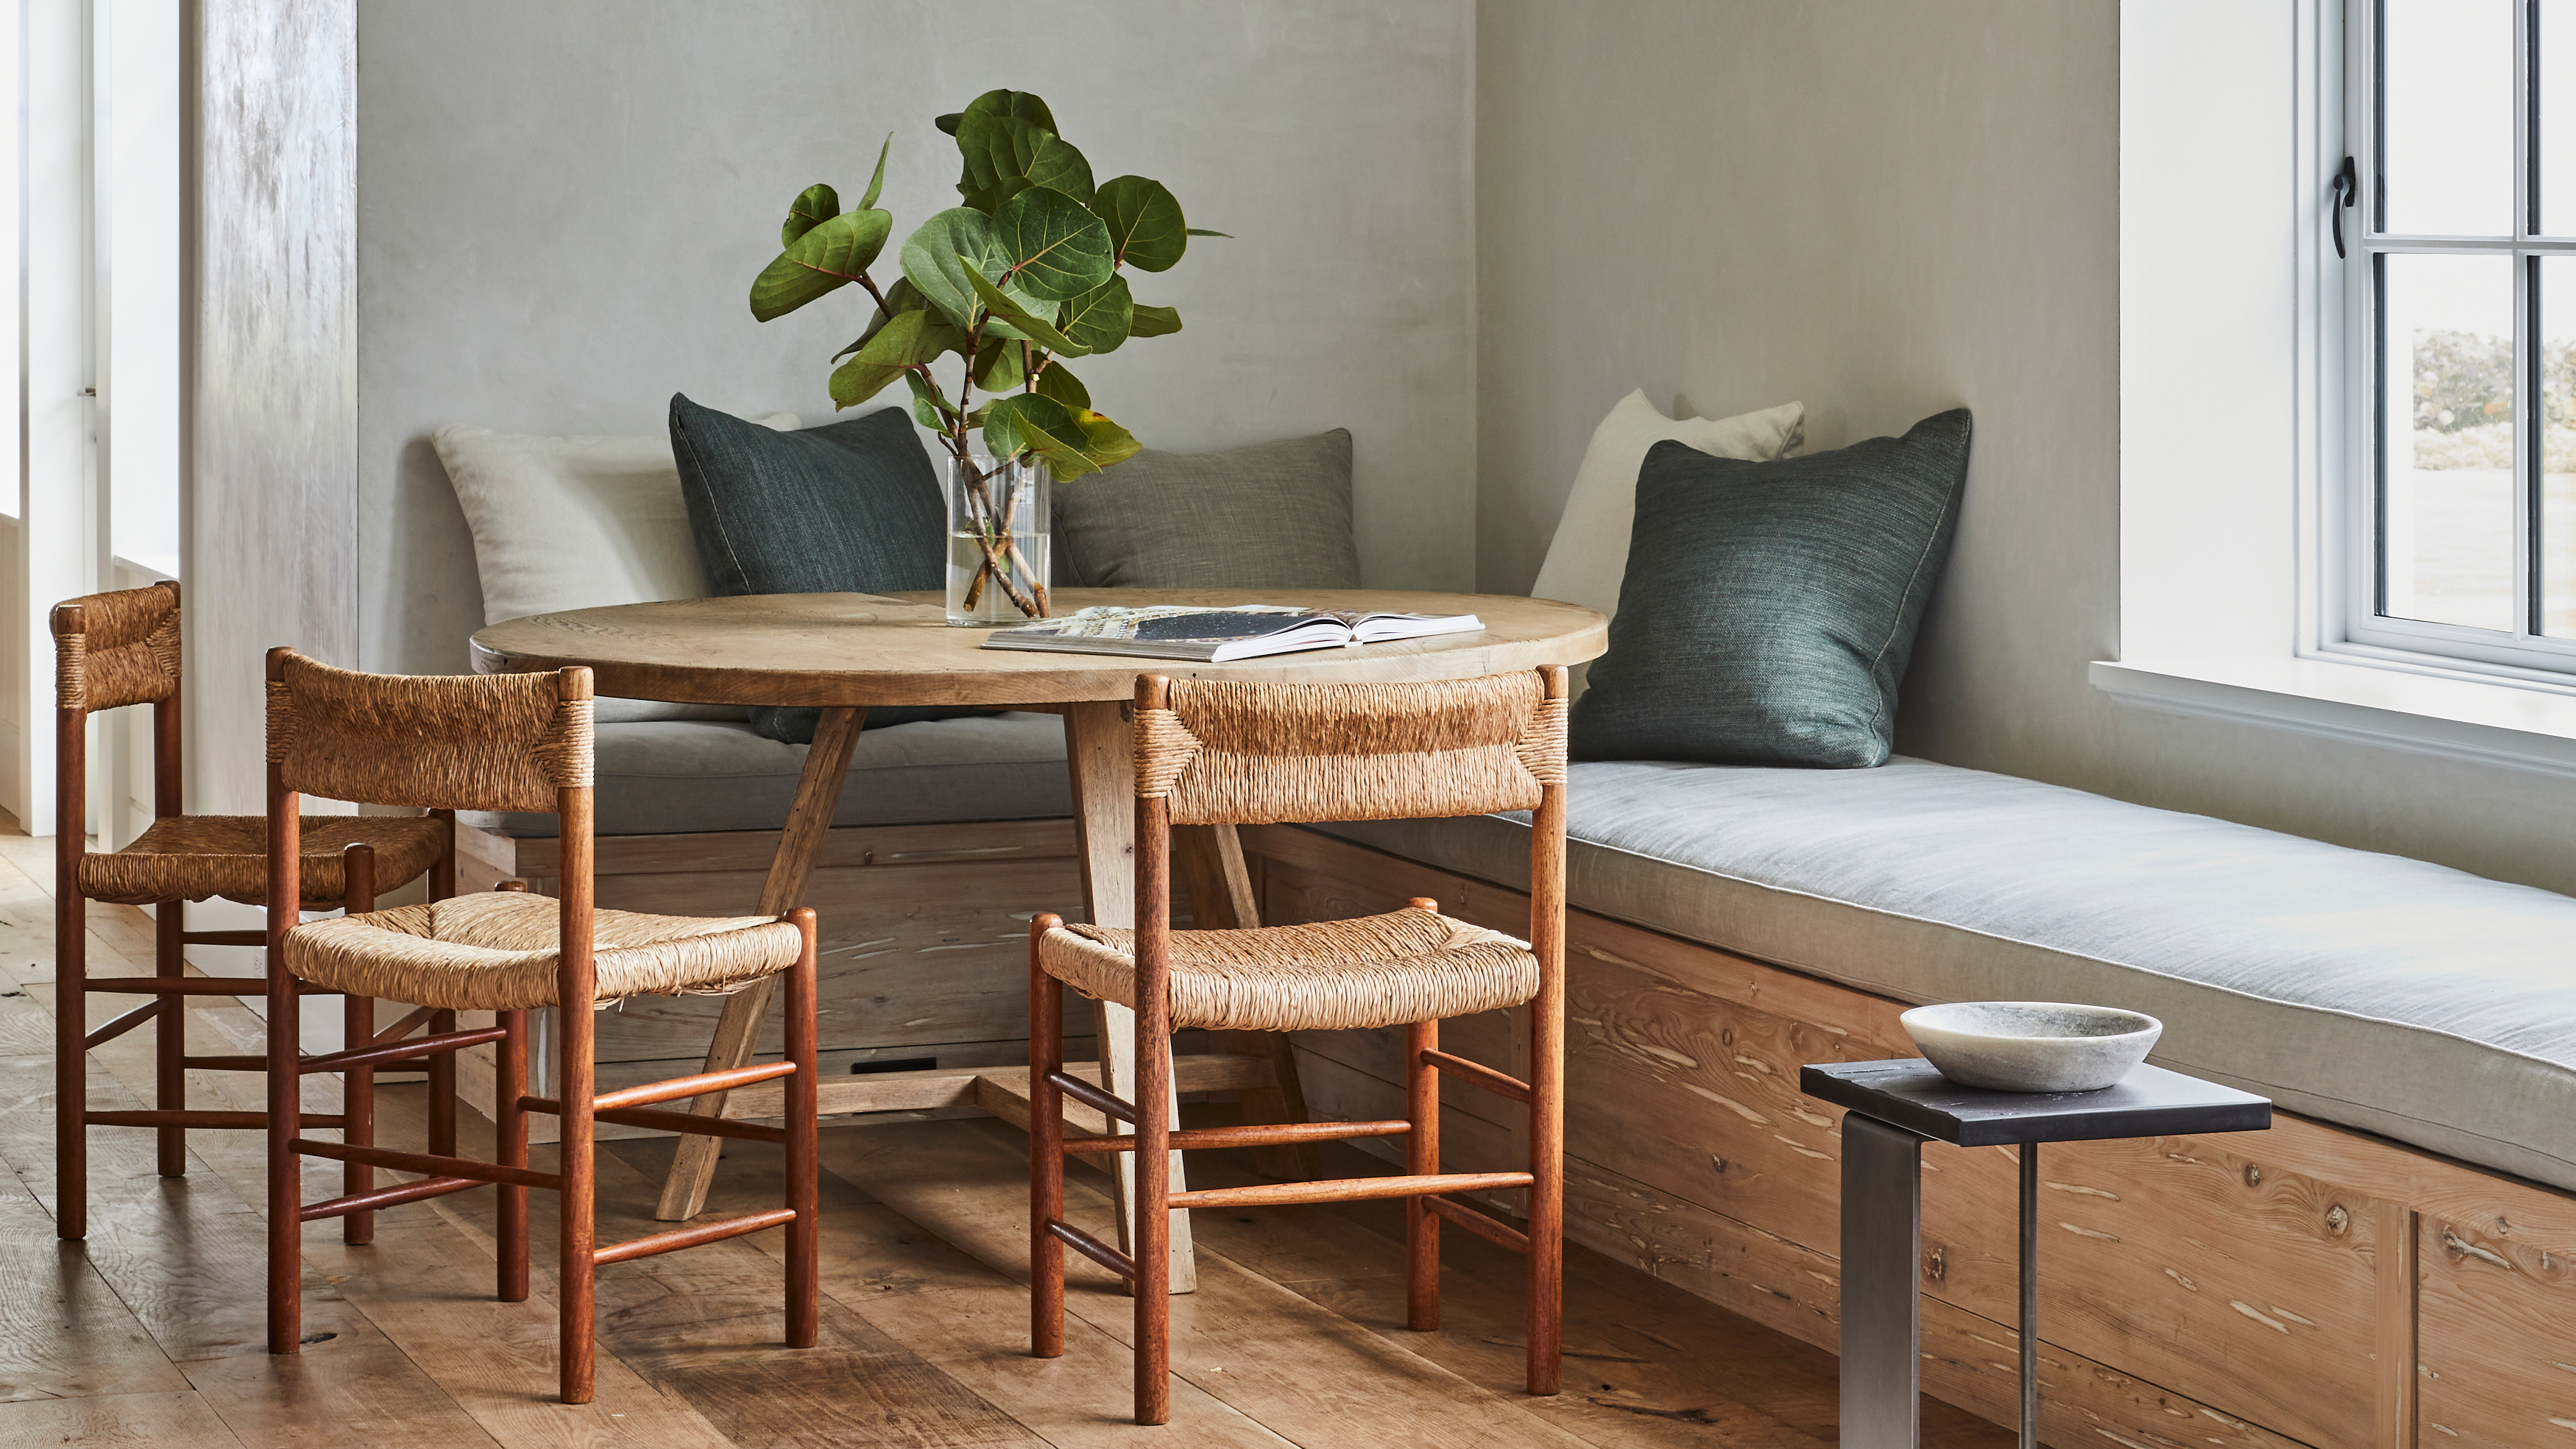 14 Small Dining Room Ideas Chic And, Extra Long Dining Room Table Bench